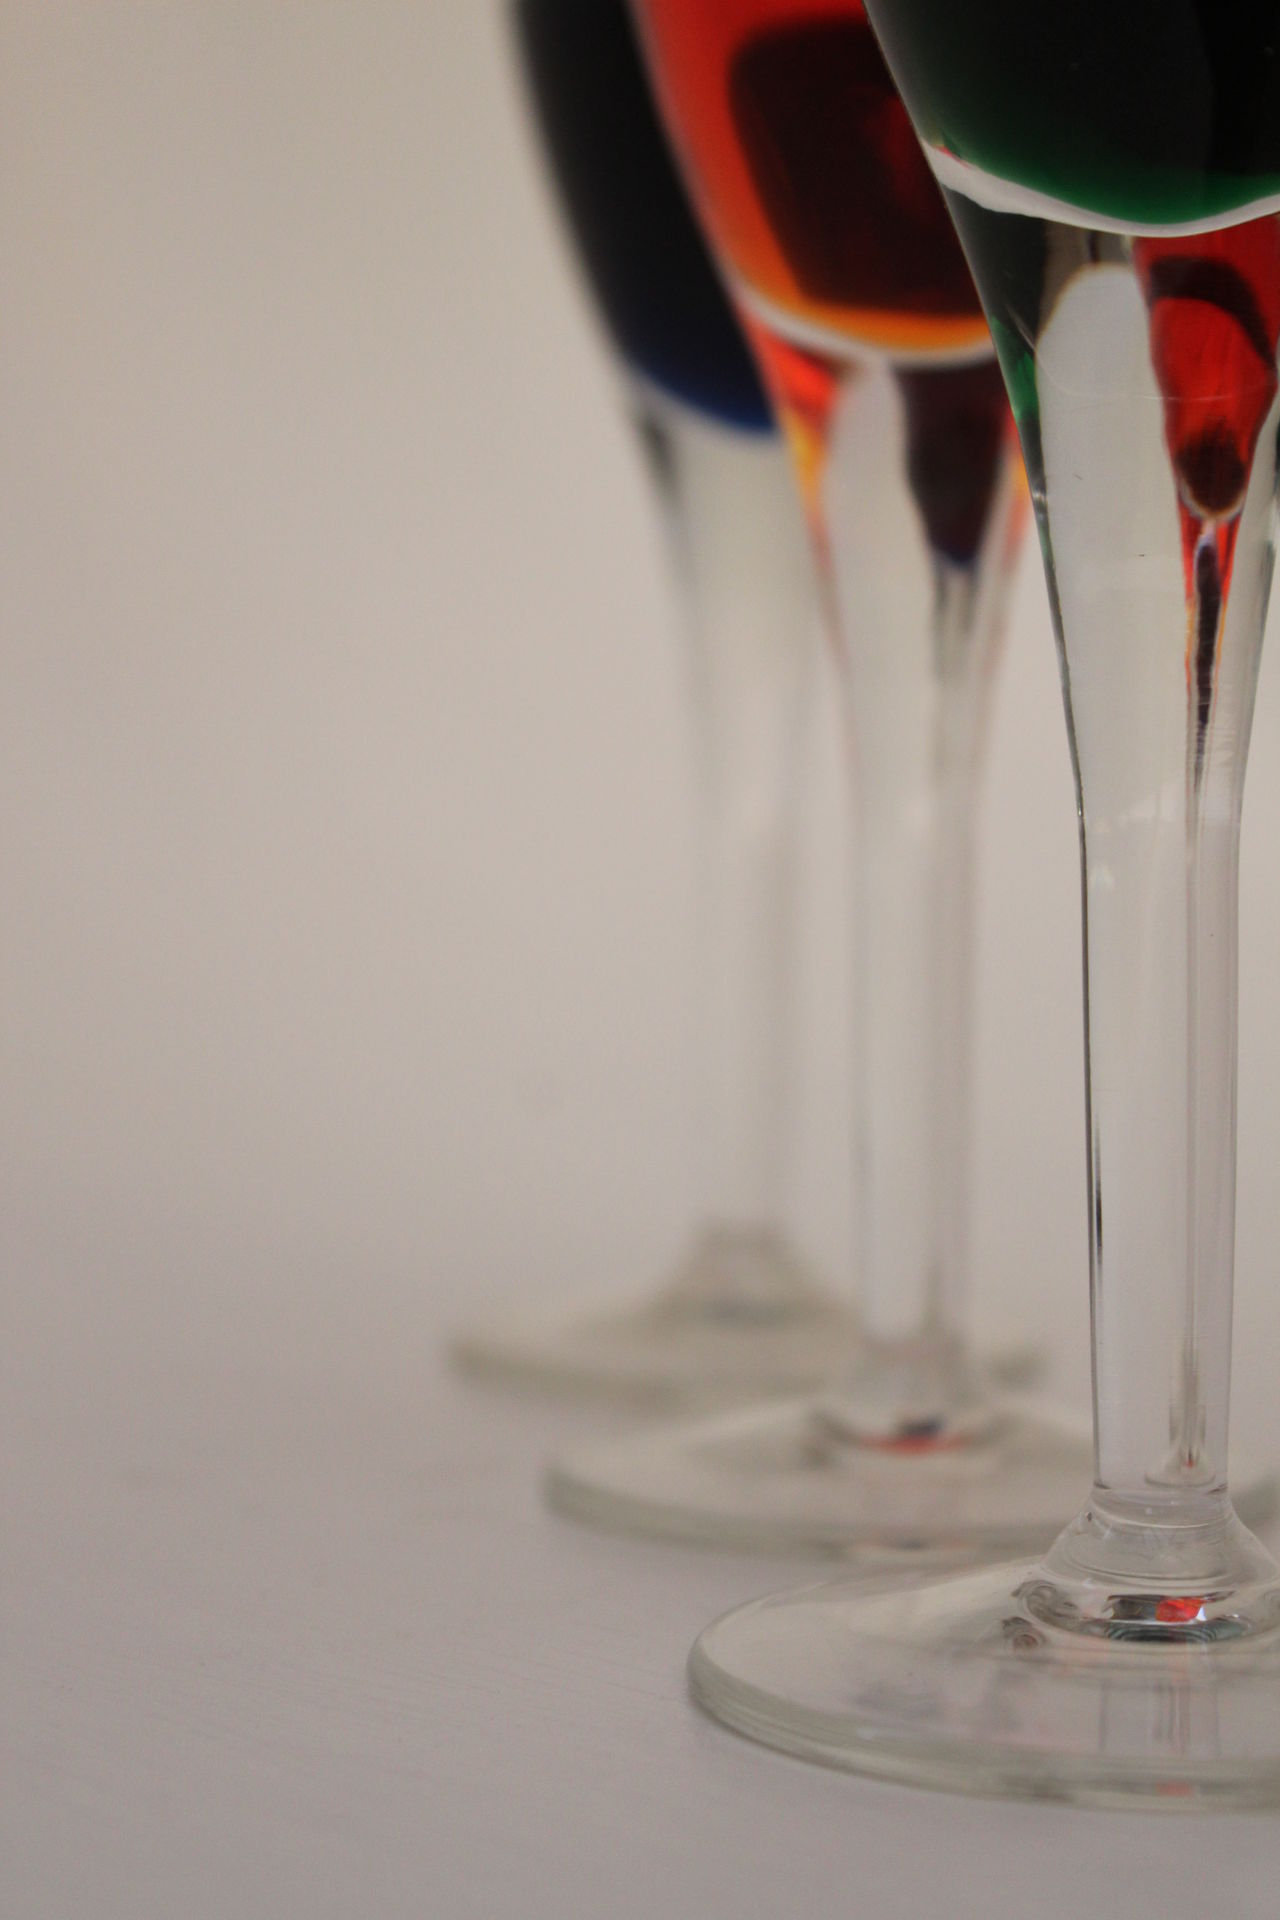 Alcohol Close-up Crystal Day Drink Drinking Glass Food And Drink Freshness Indoors  No People Refreshment Studio Shot White Background Wine Wineglass